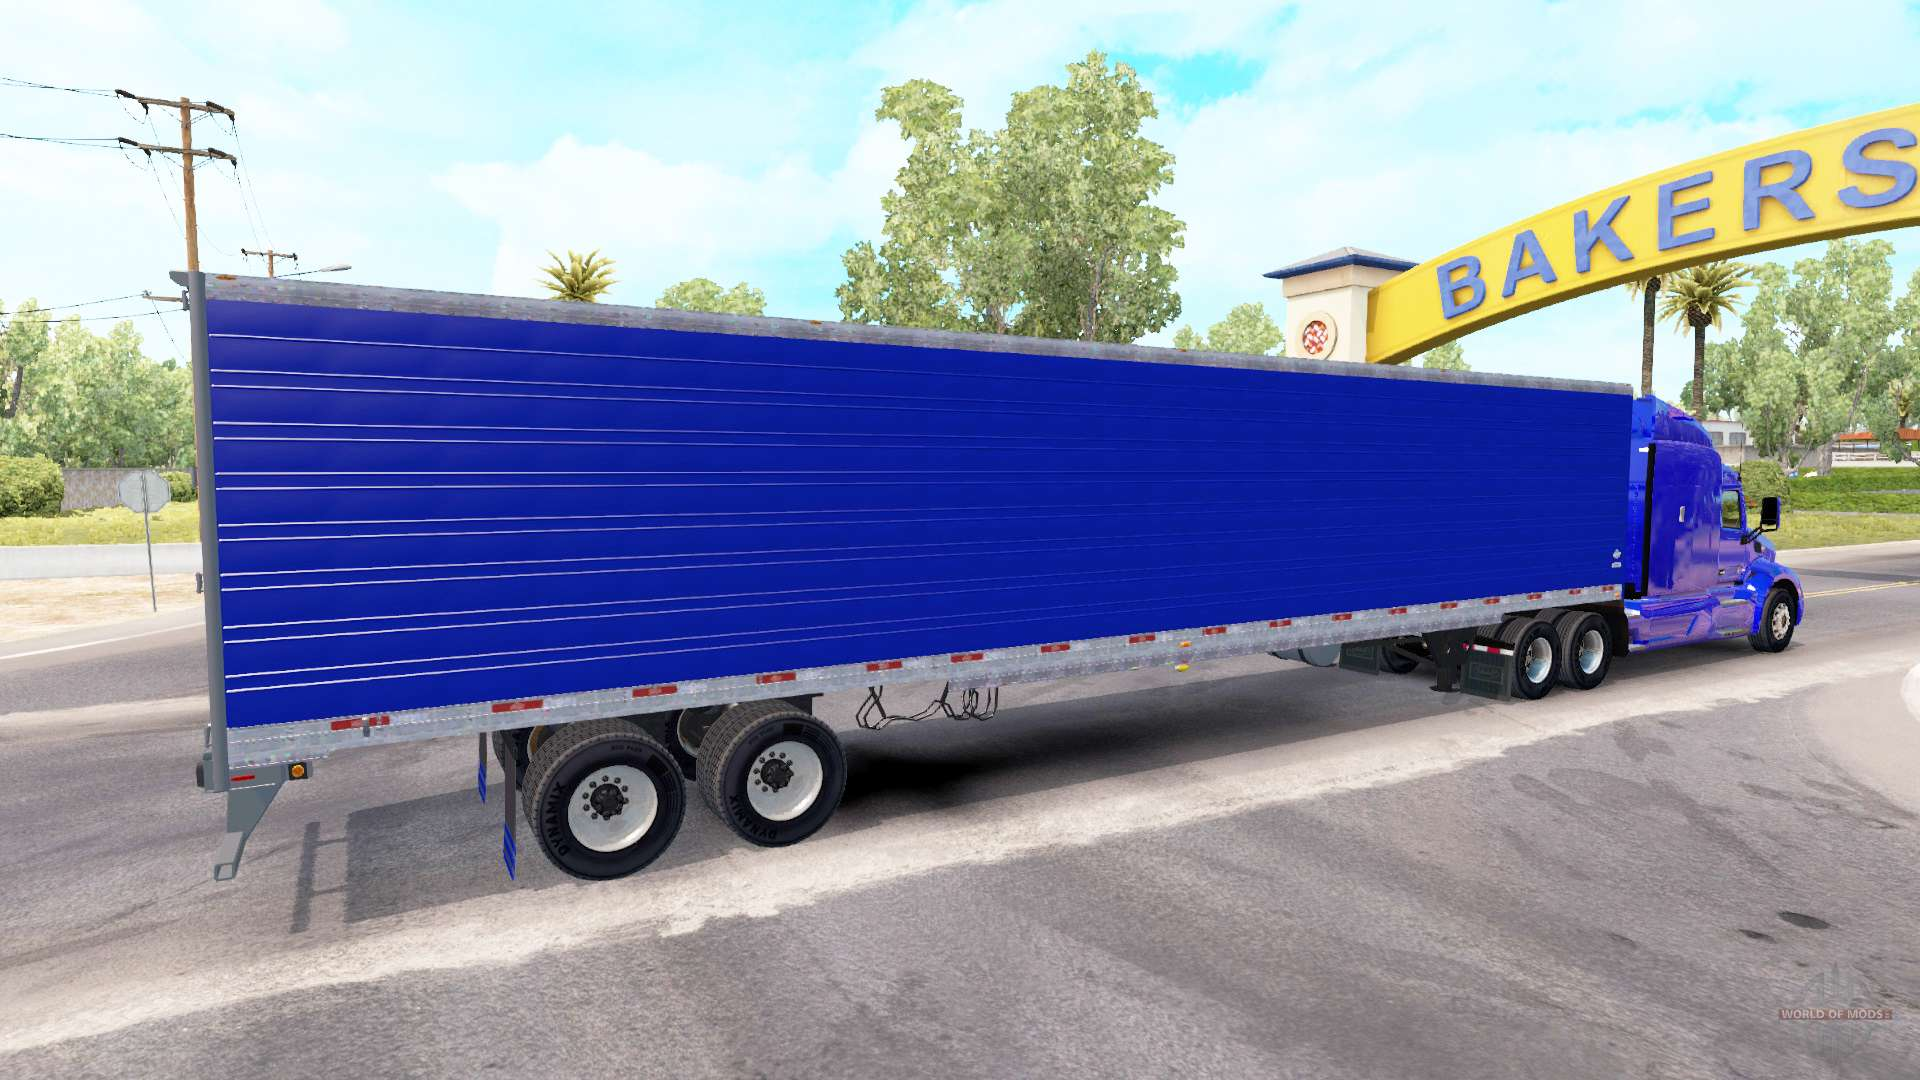 Semi Tractor Trailer : Blue refrigerated semi trailer for american truck simulator